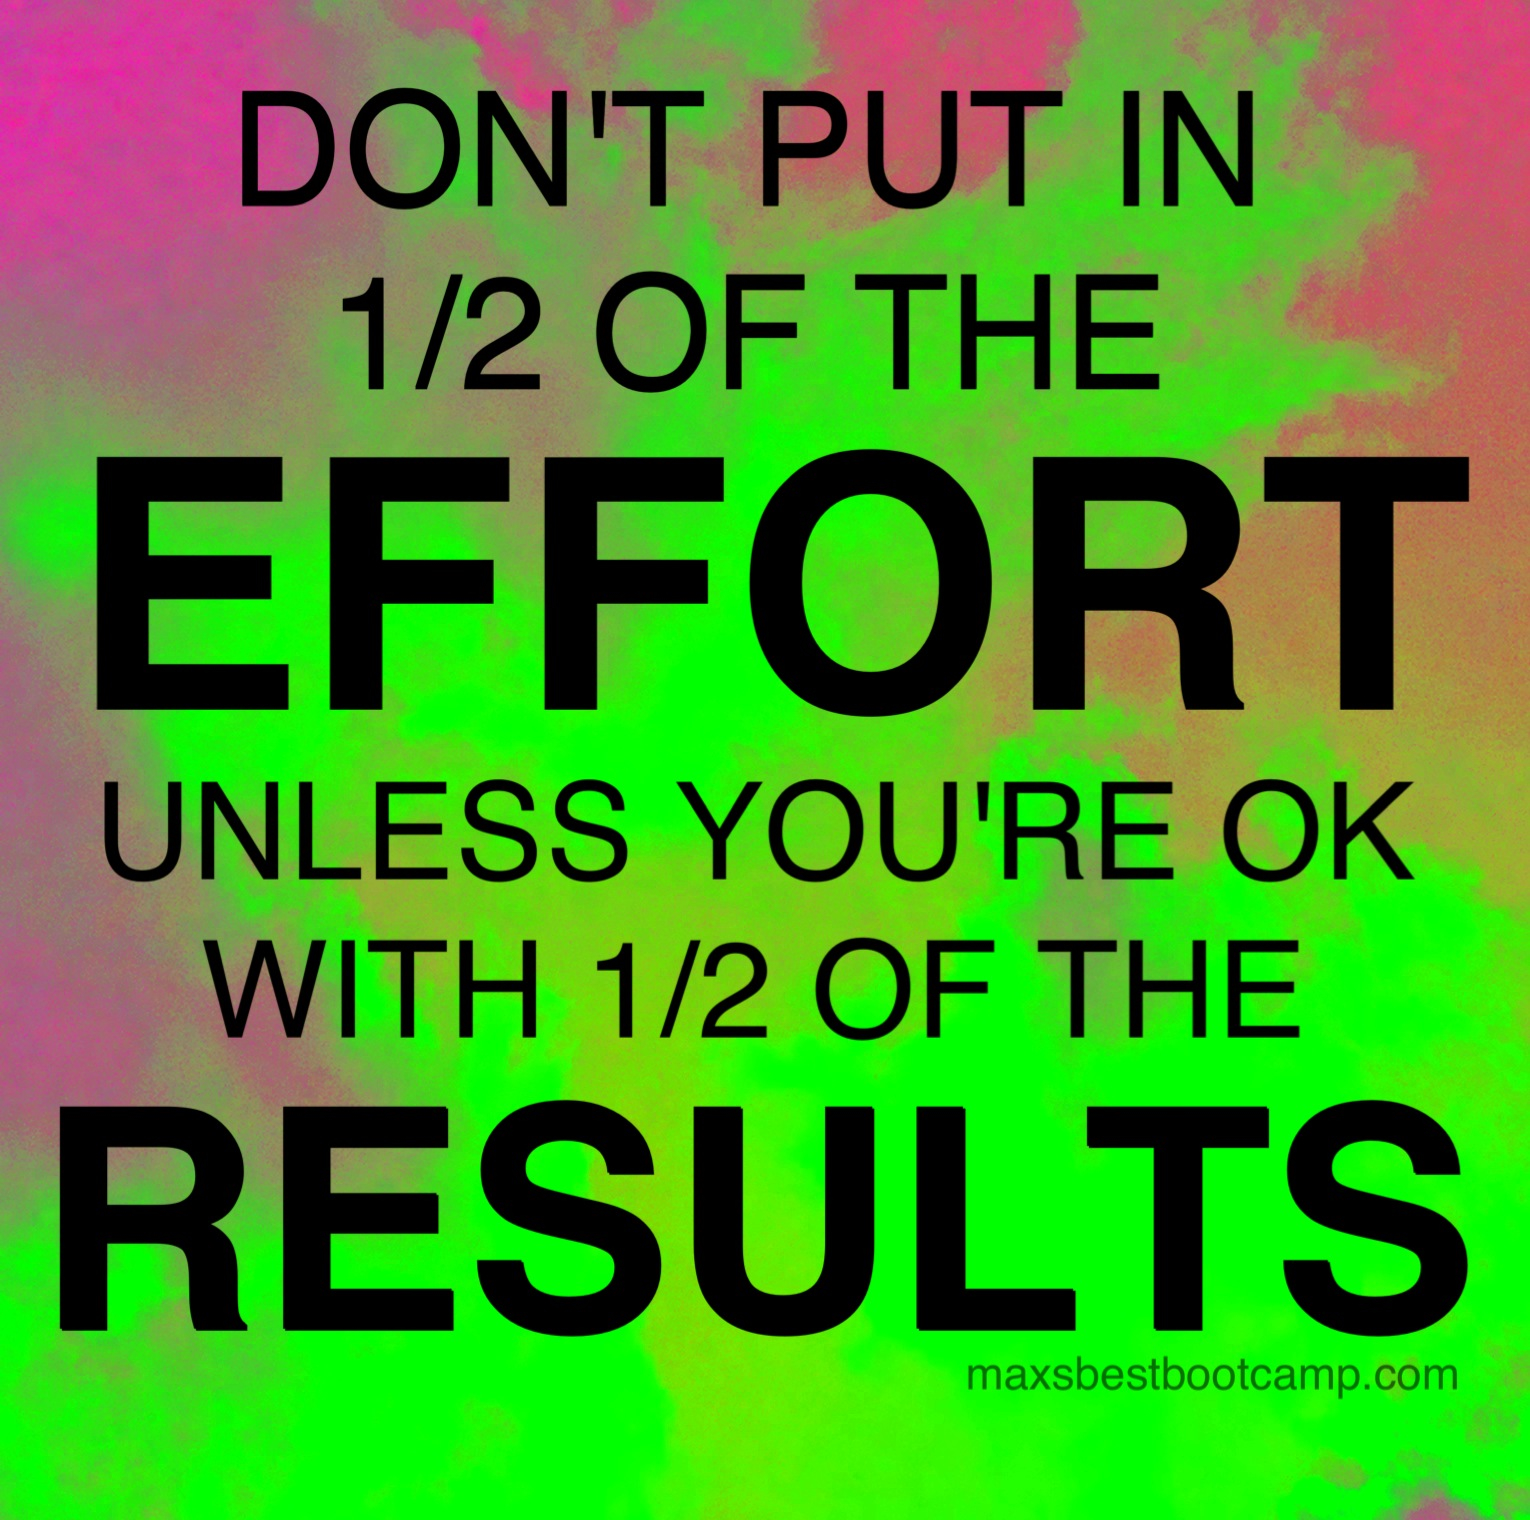 in an effort_Quotes about Effort and results (77 quotes)